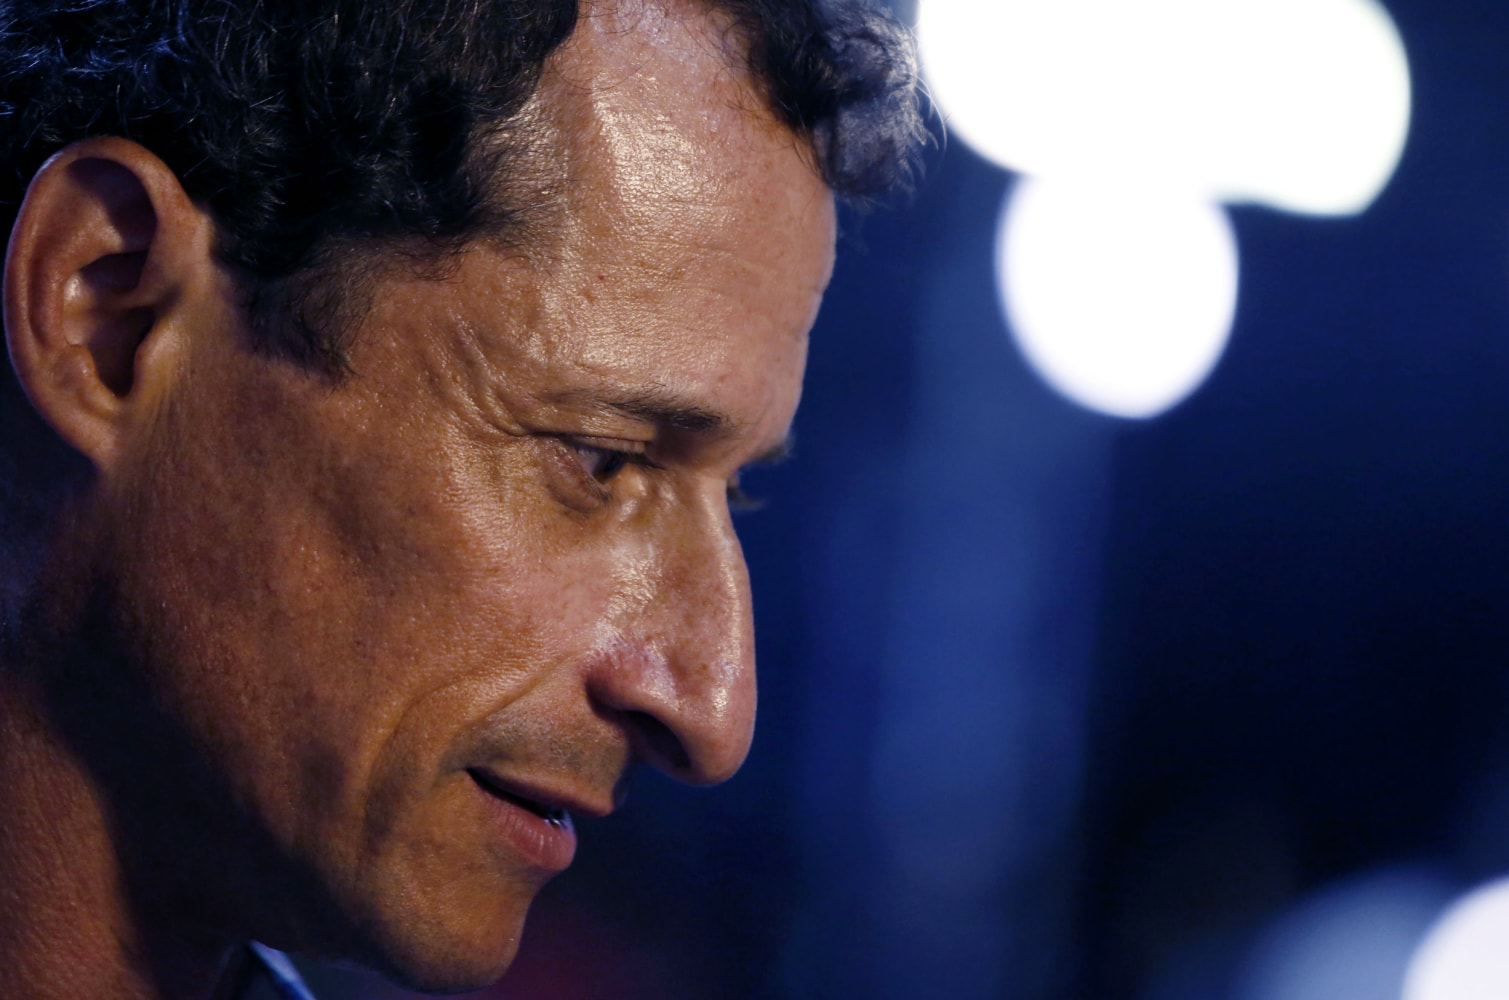 Anthony Weiner Pleads Guilty in Sexting Case, Could Get Years in Prison